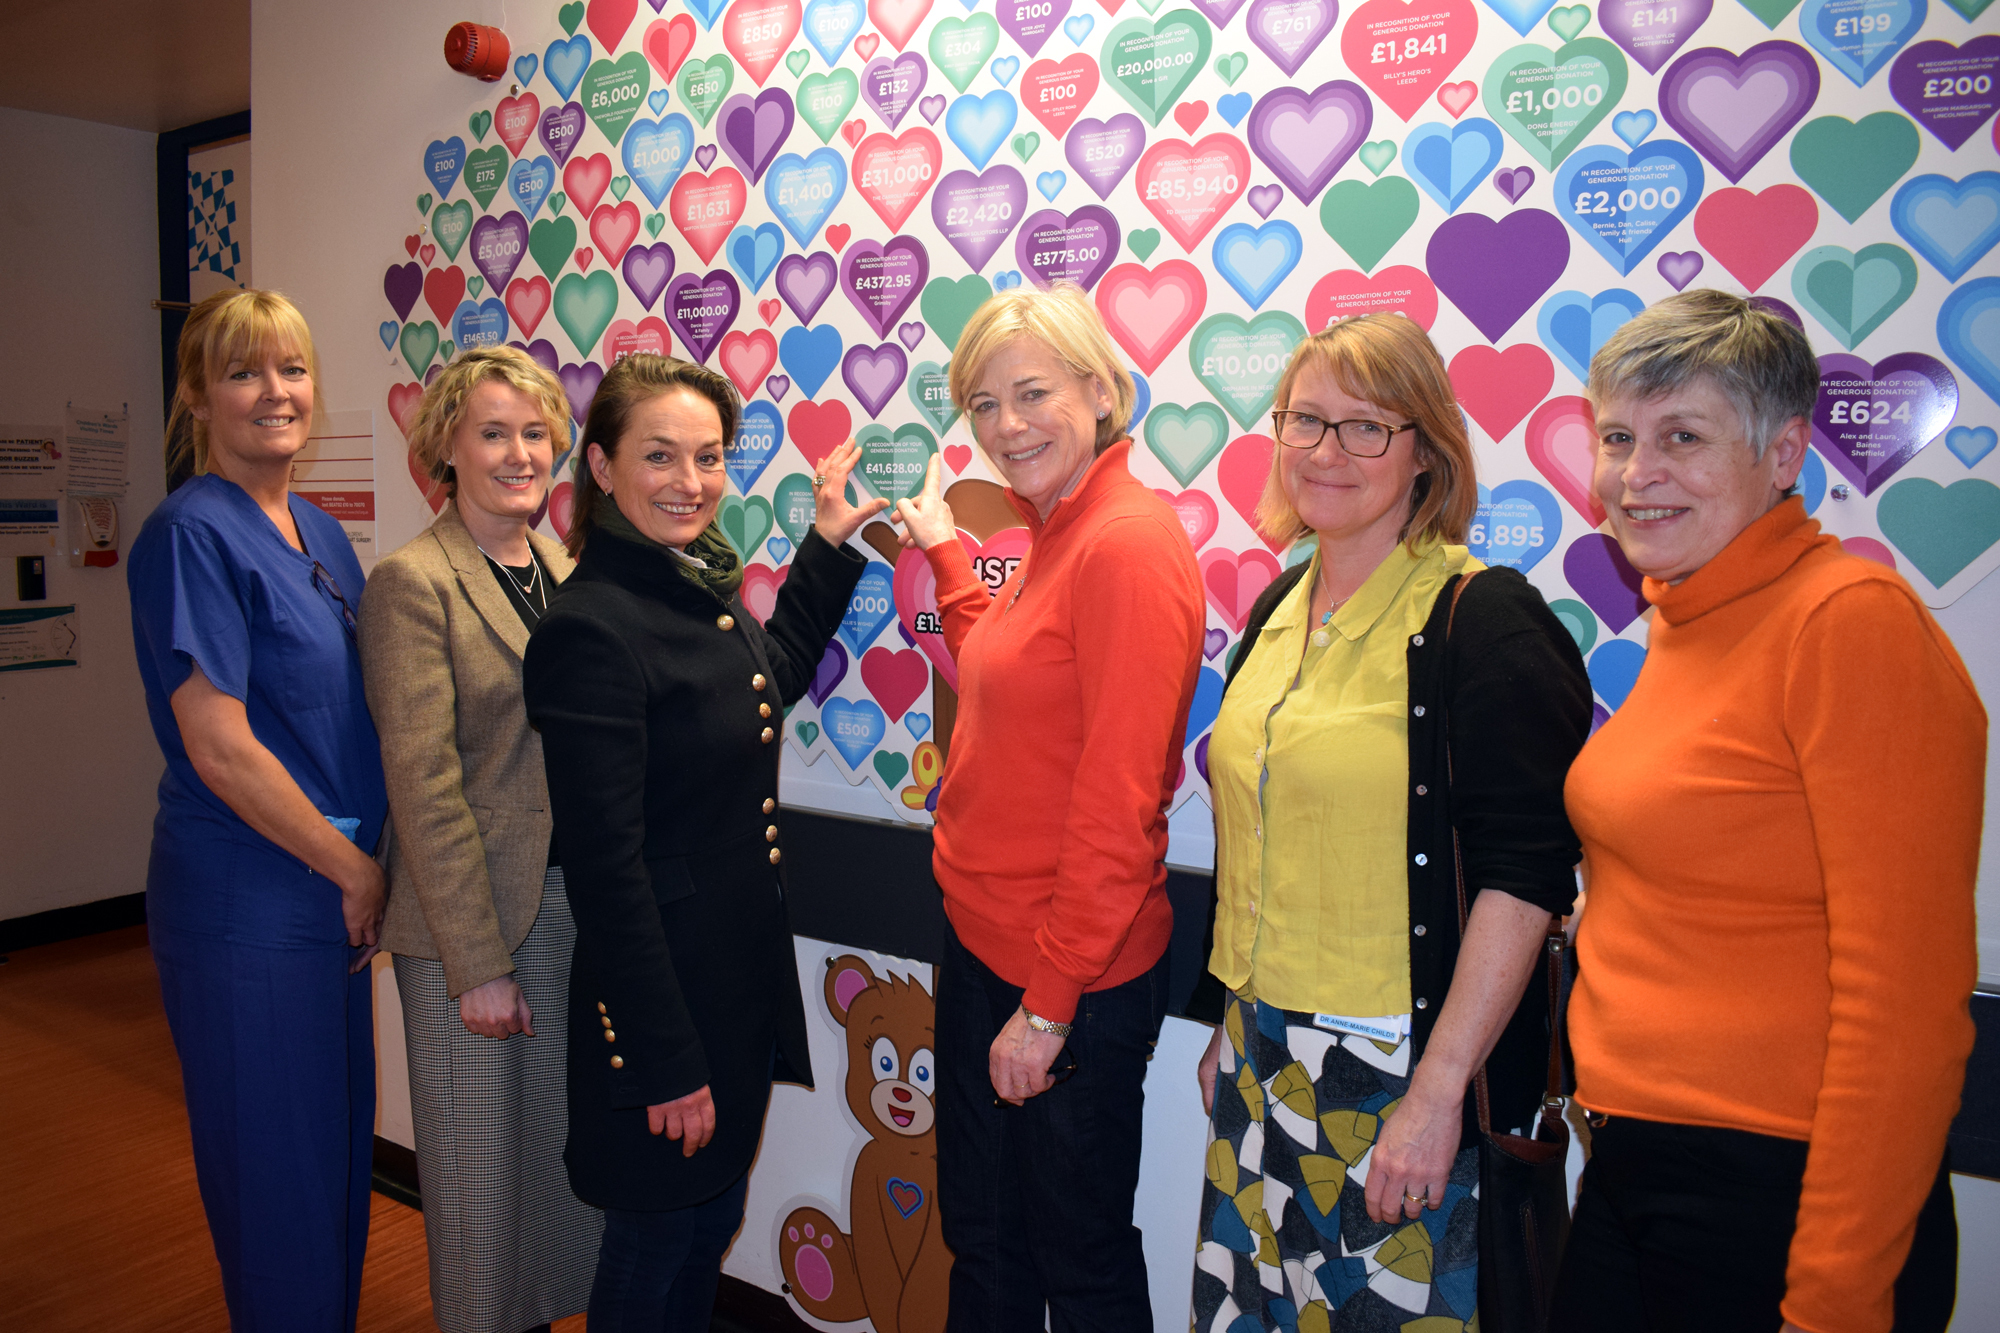 DONATION: From left, Tracy Massey, Sharon Coyle, Jo Ropner, Countess Peel, Anne-Marie Childs and Louise Sampson